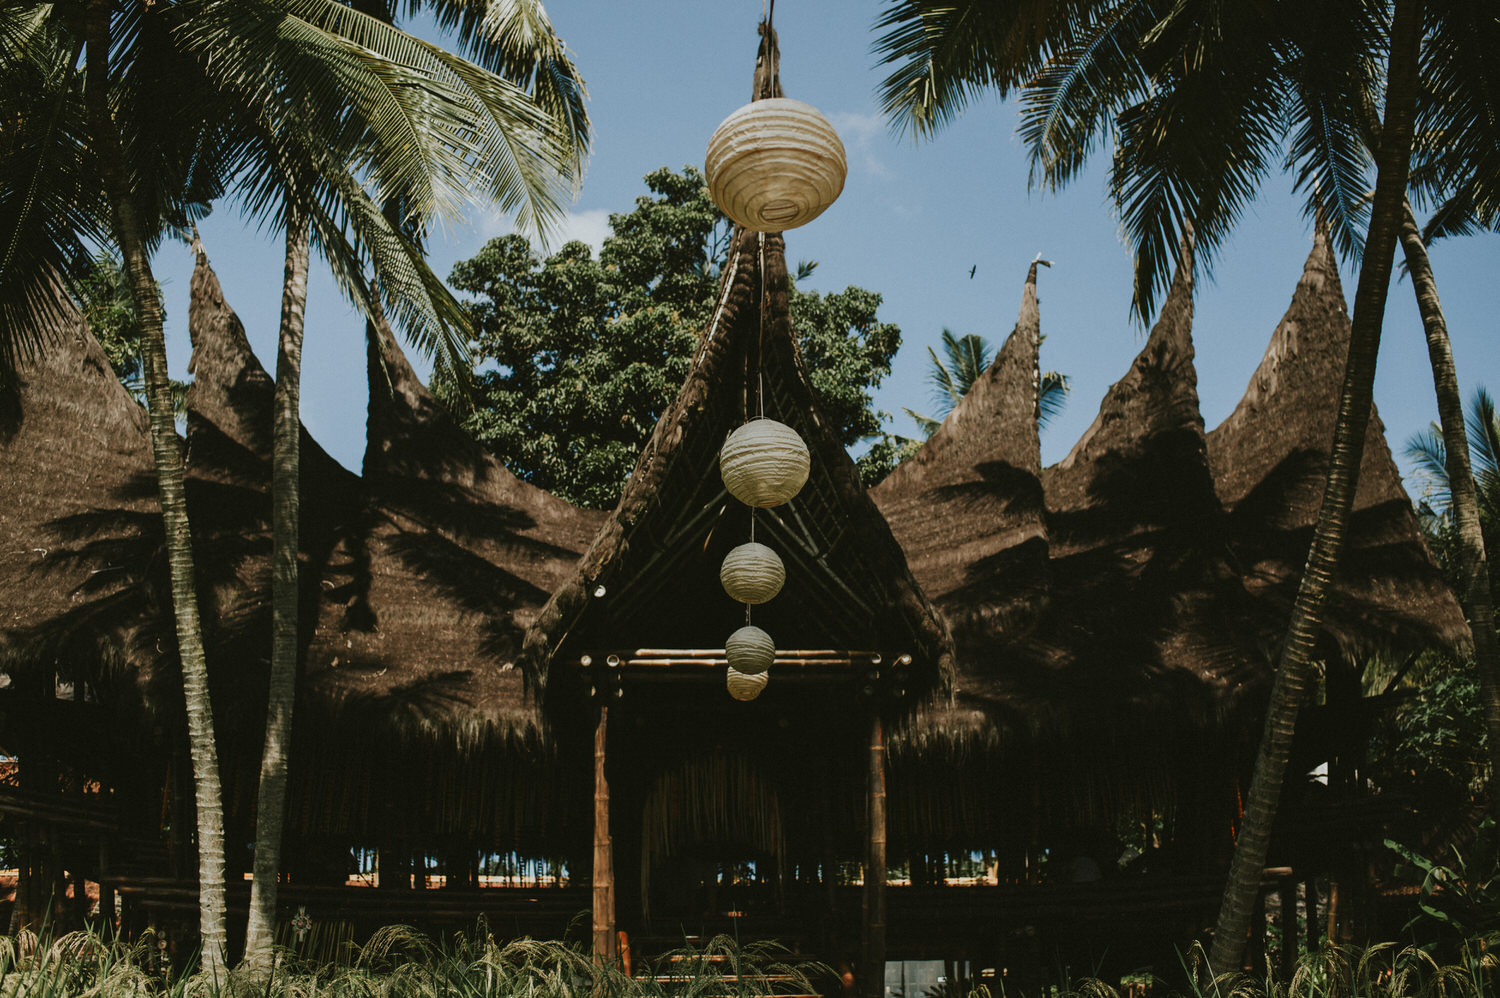 bali-wedding-ubud-wedding-wedding-destination-diktatphotography-kadek-artayasa-elaine-and-glenn-011